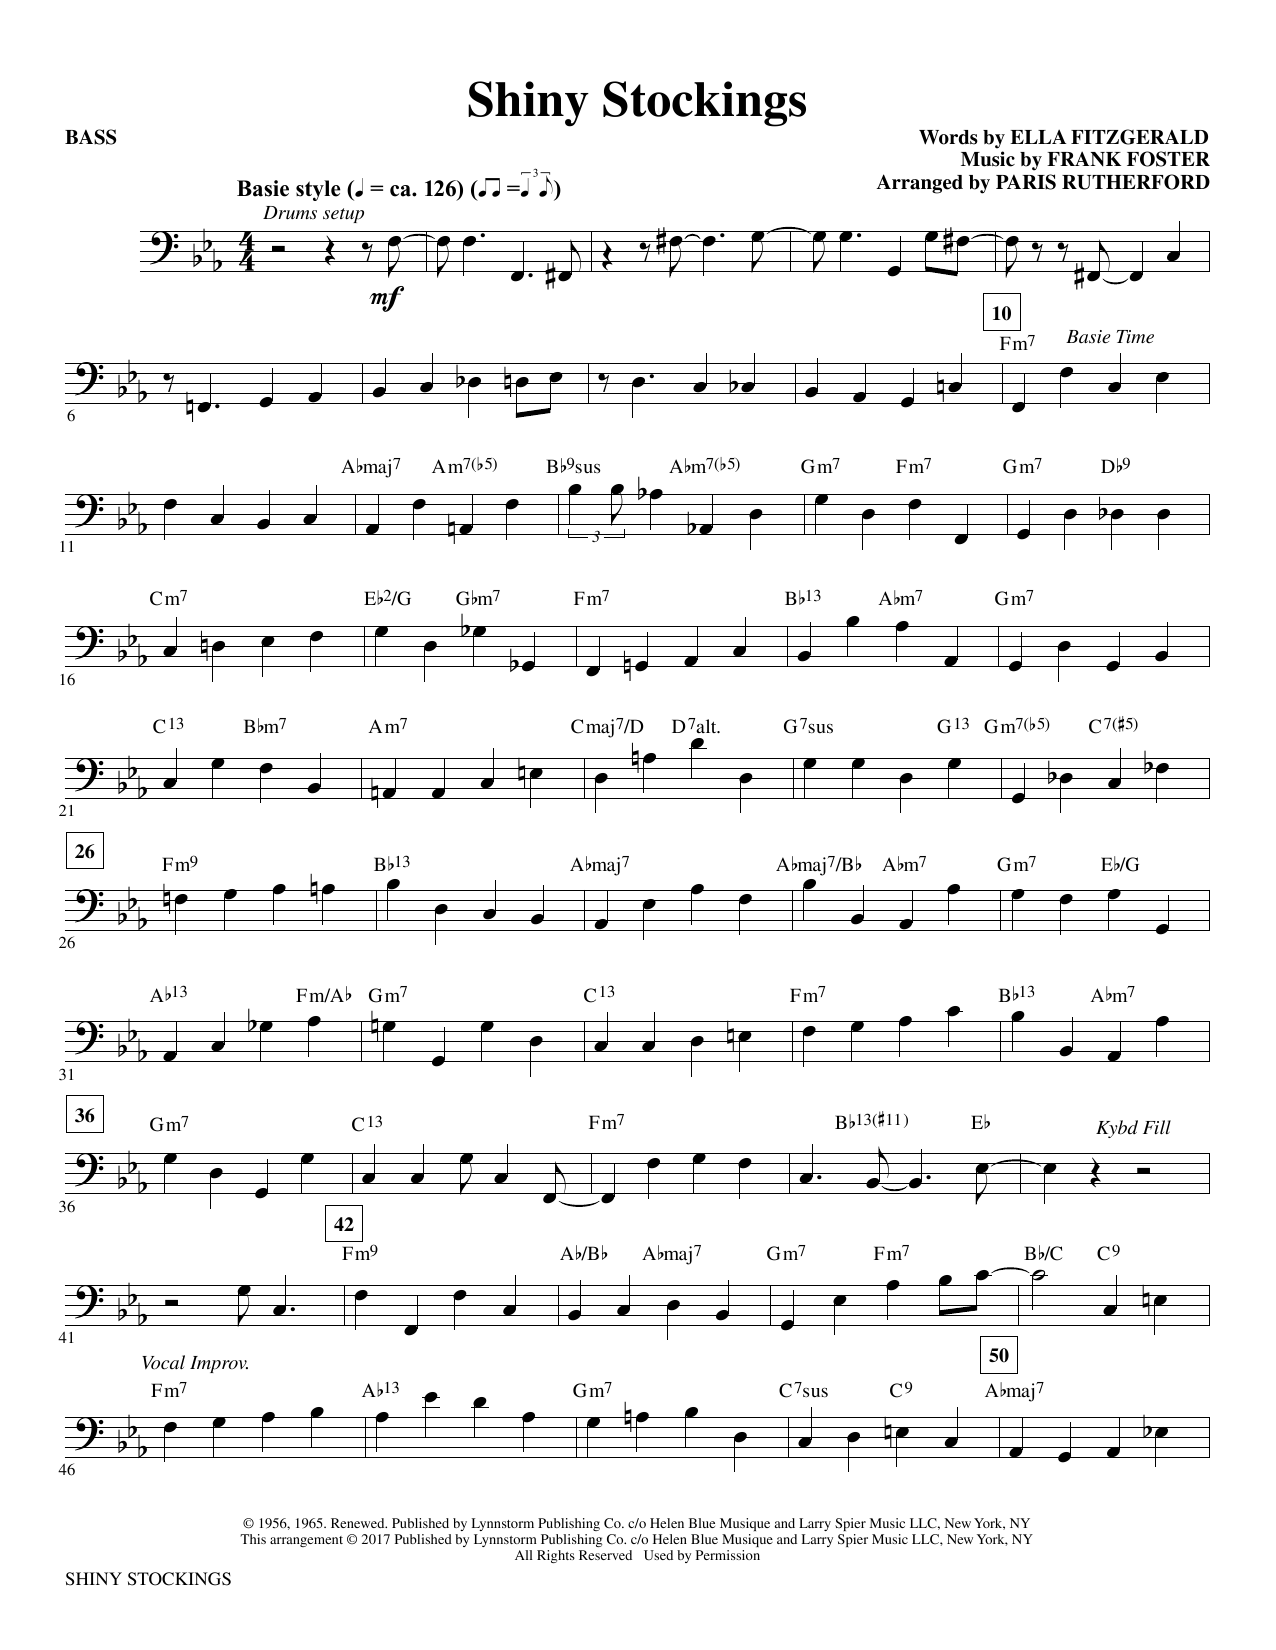 Shiny Stockings - Bass Sheet Music